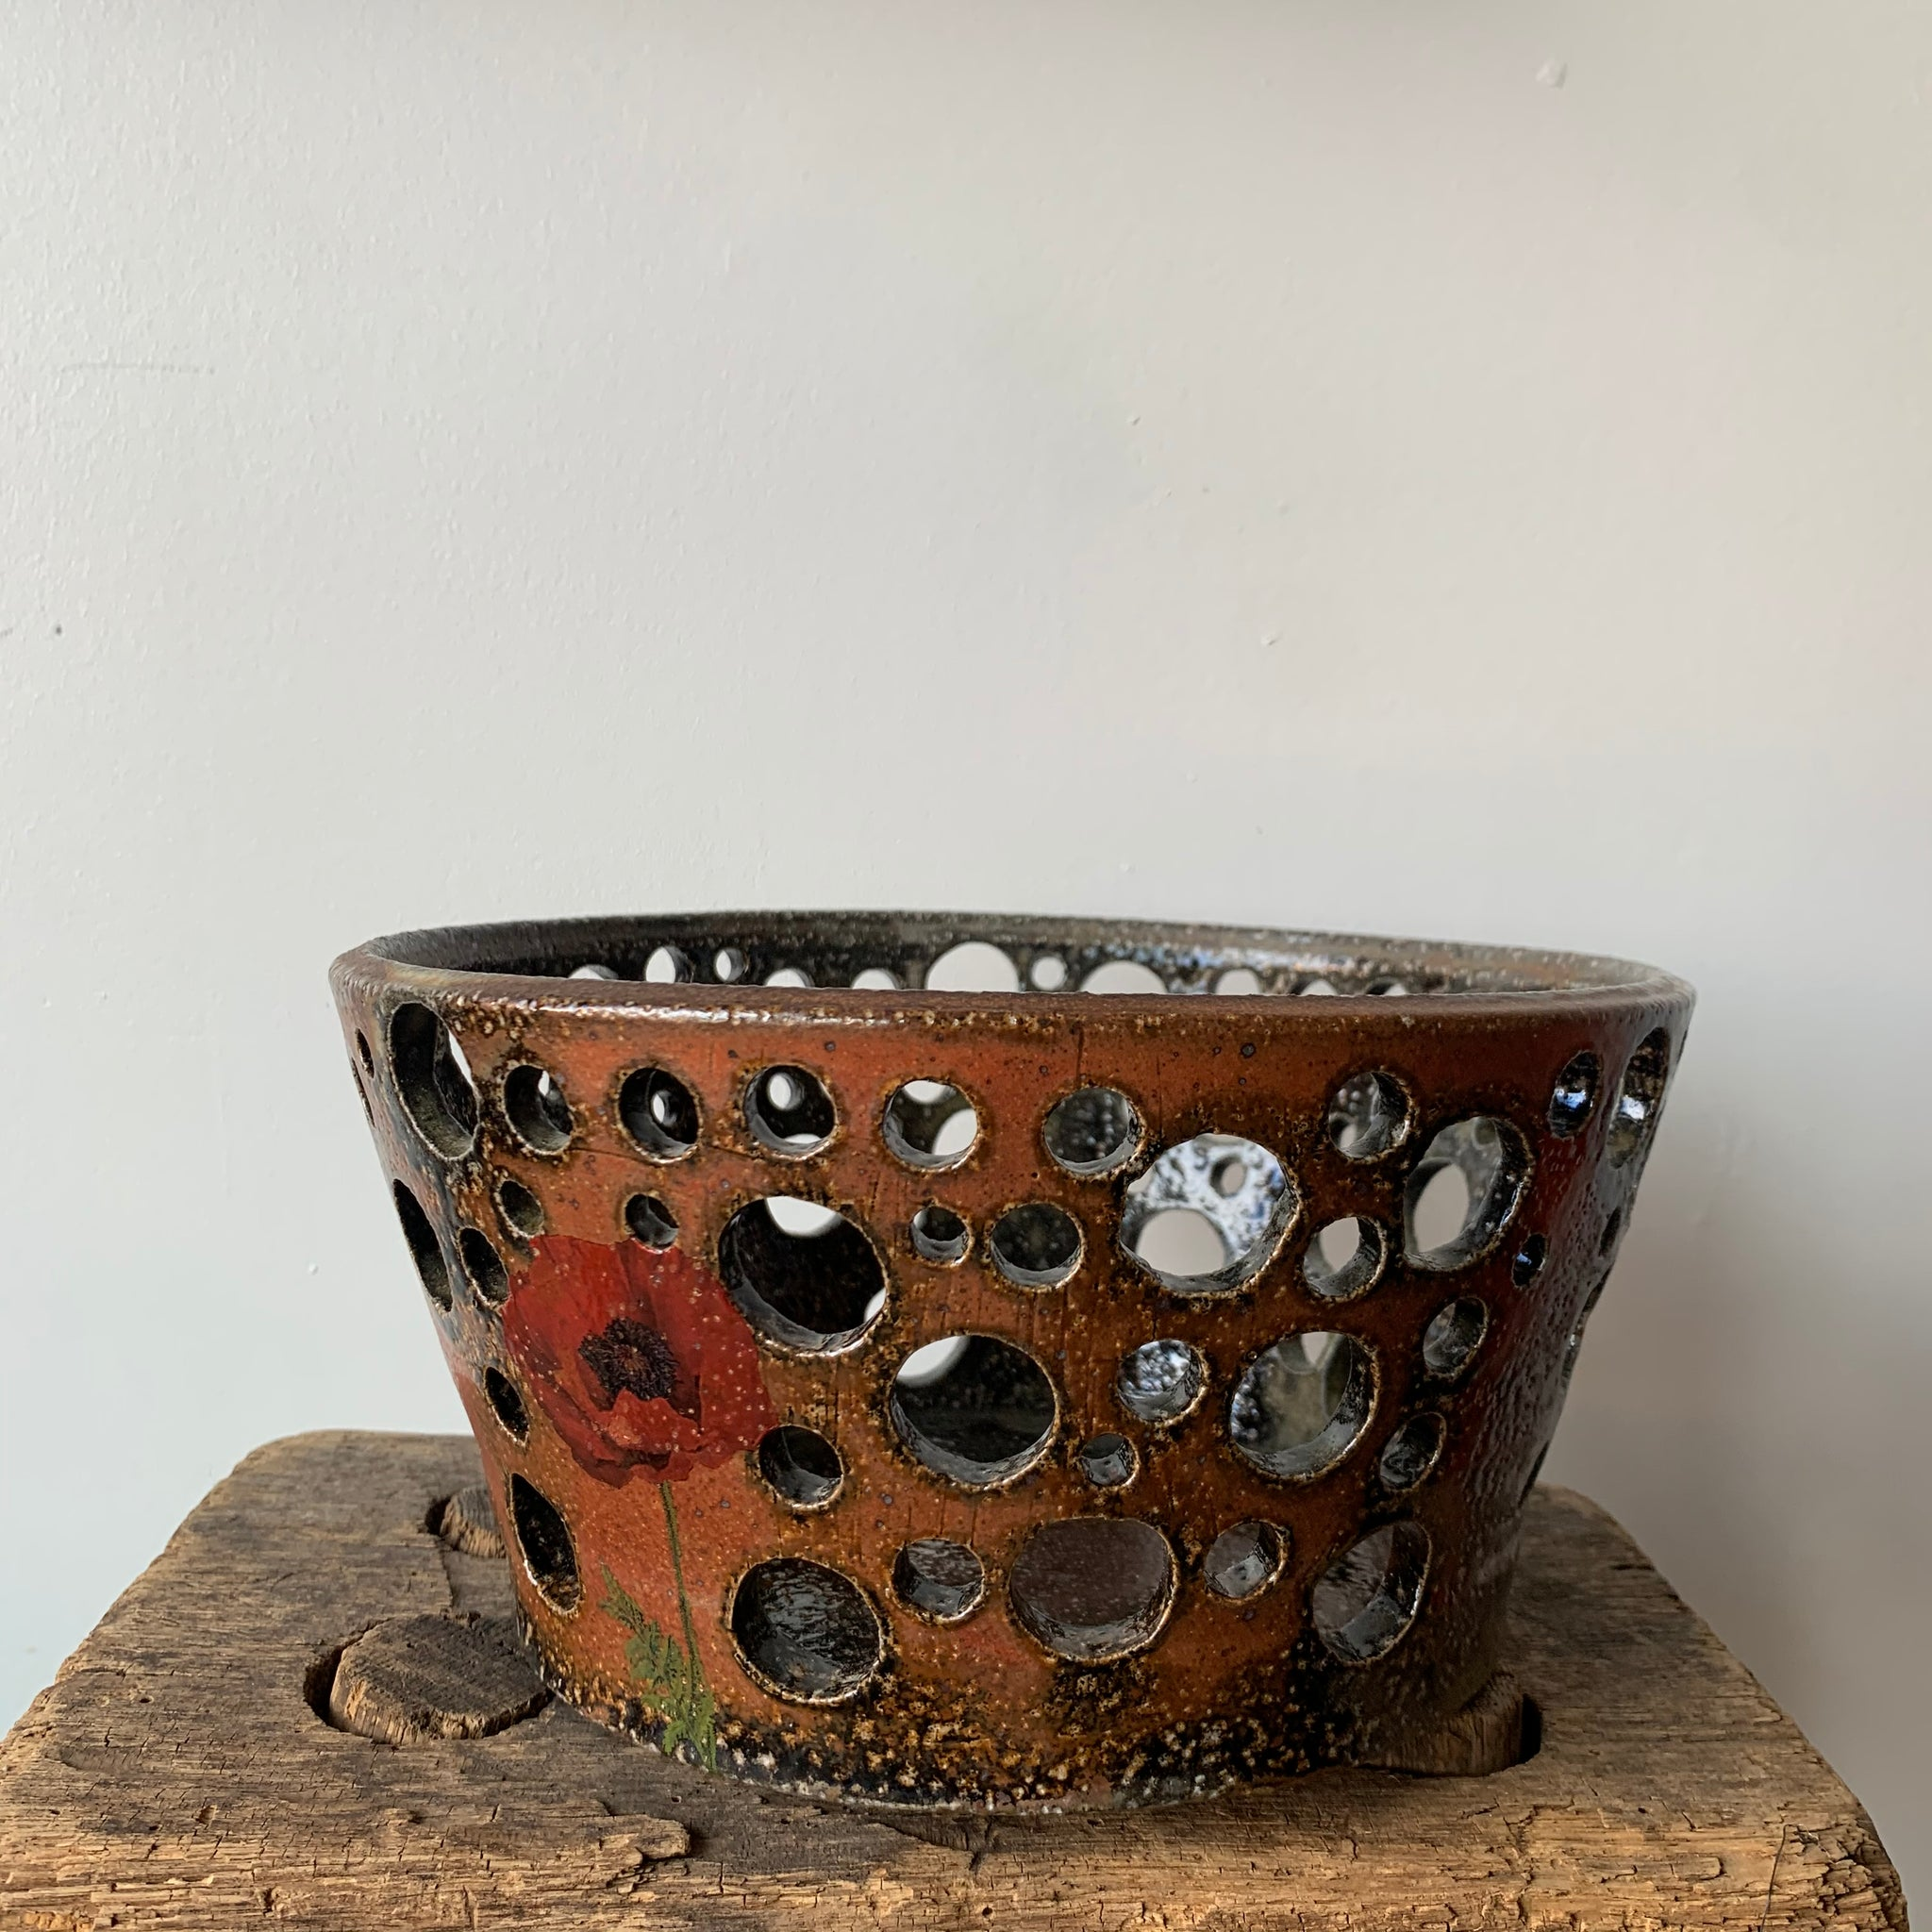 Wood Fired and Decaled Fruit Bowl by Justin Rothshank